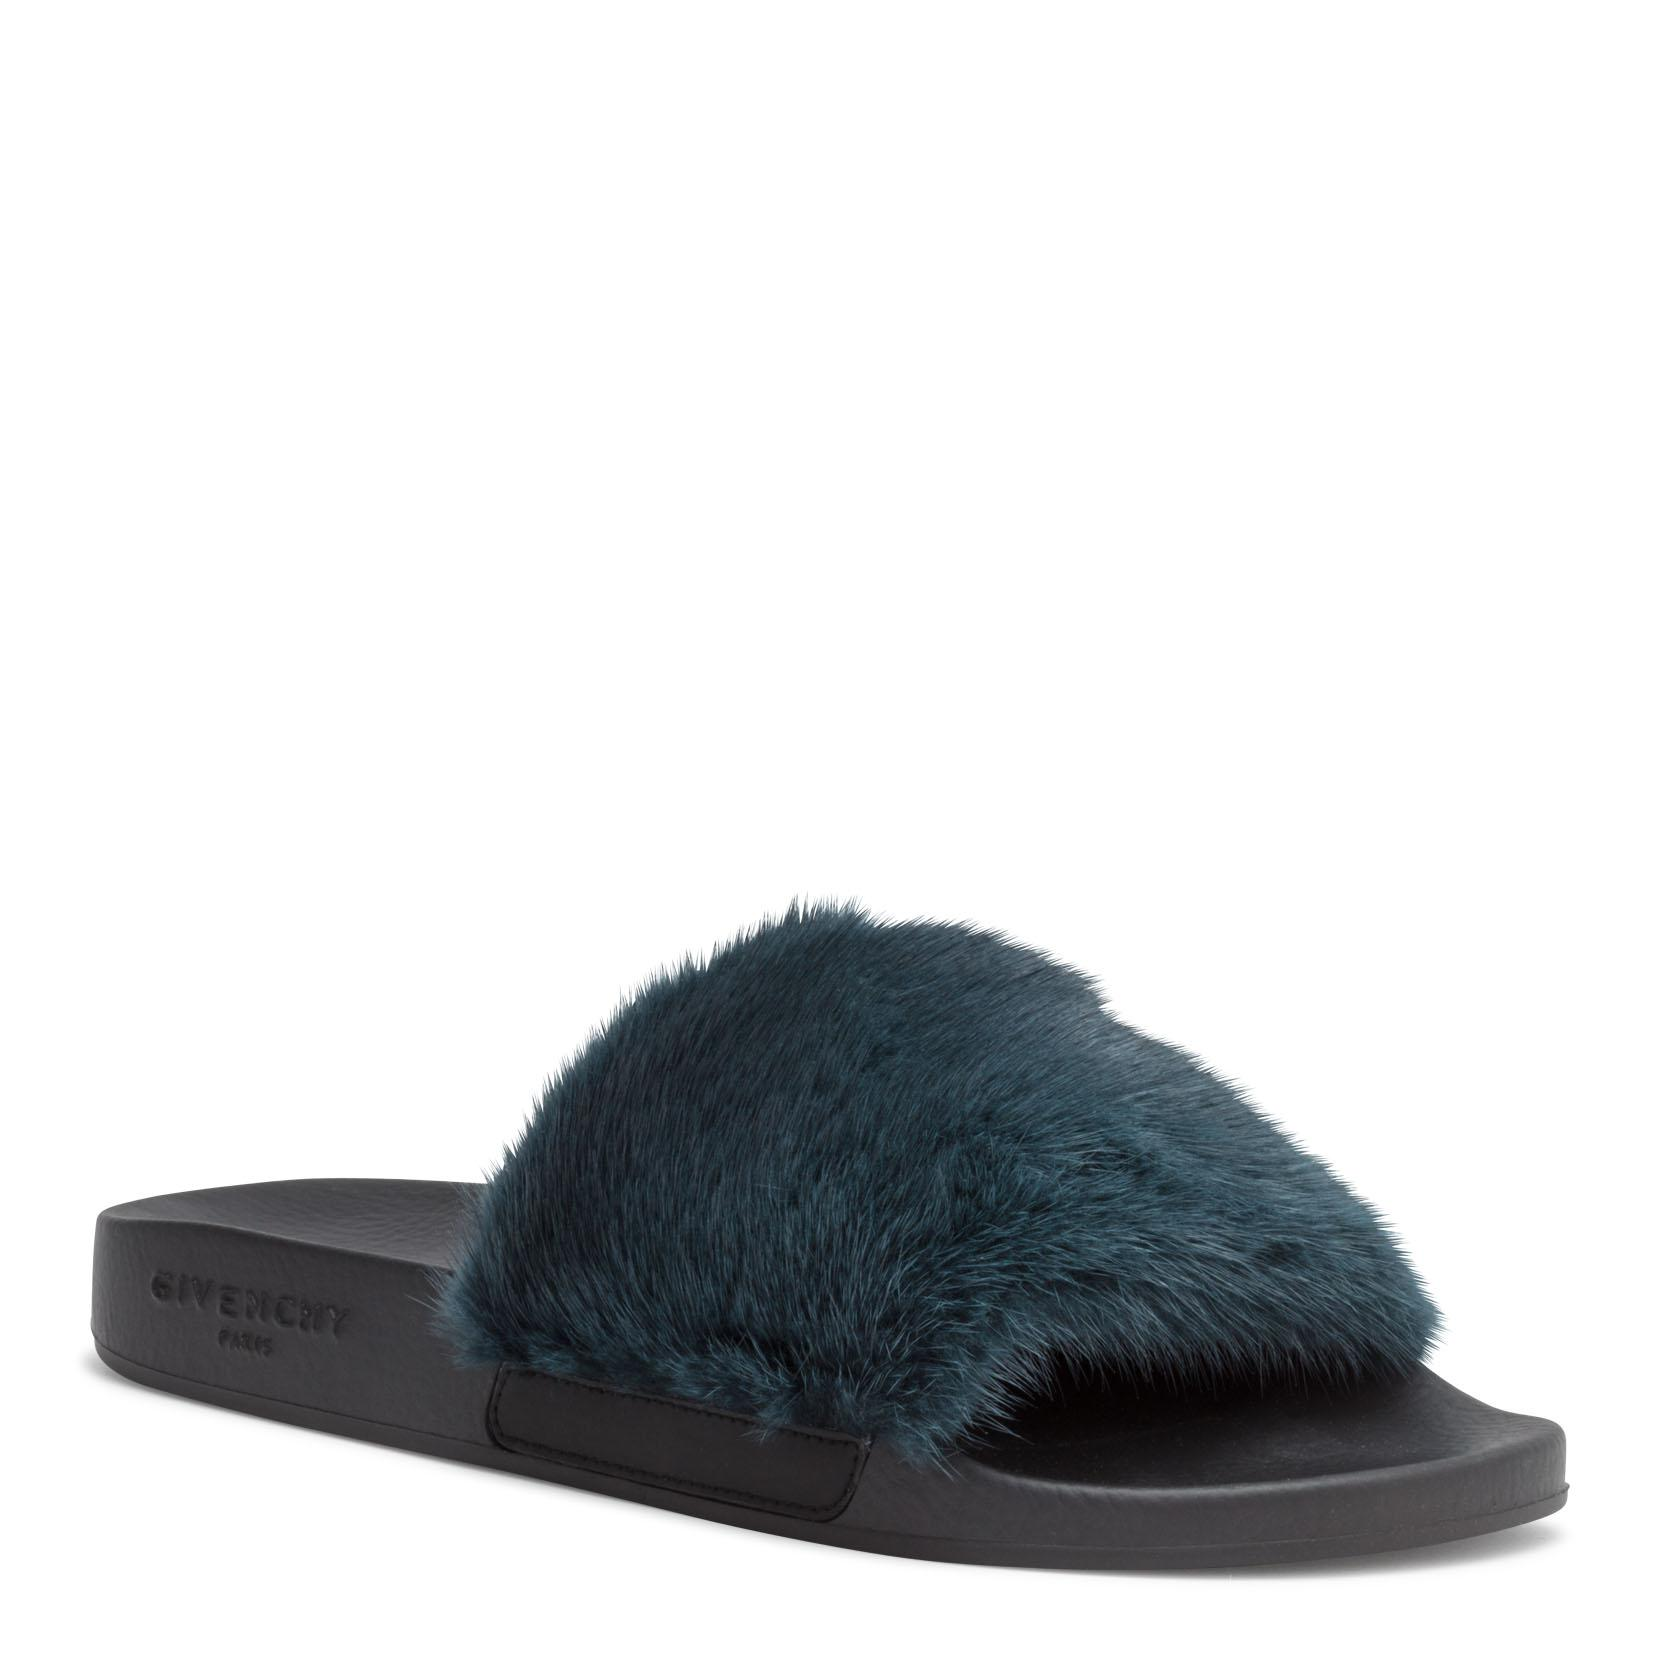 9b80b0770982 Lyst givenchy dark green mink slide sandal in blue jpg 1660x1660 Givenchy  mink slides